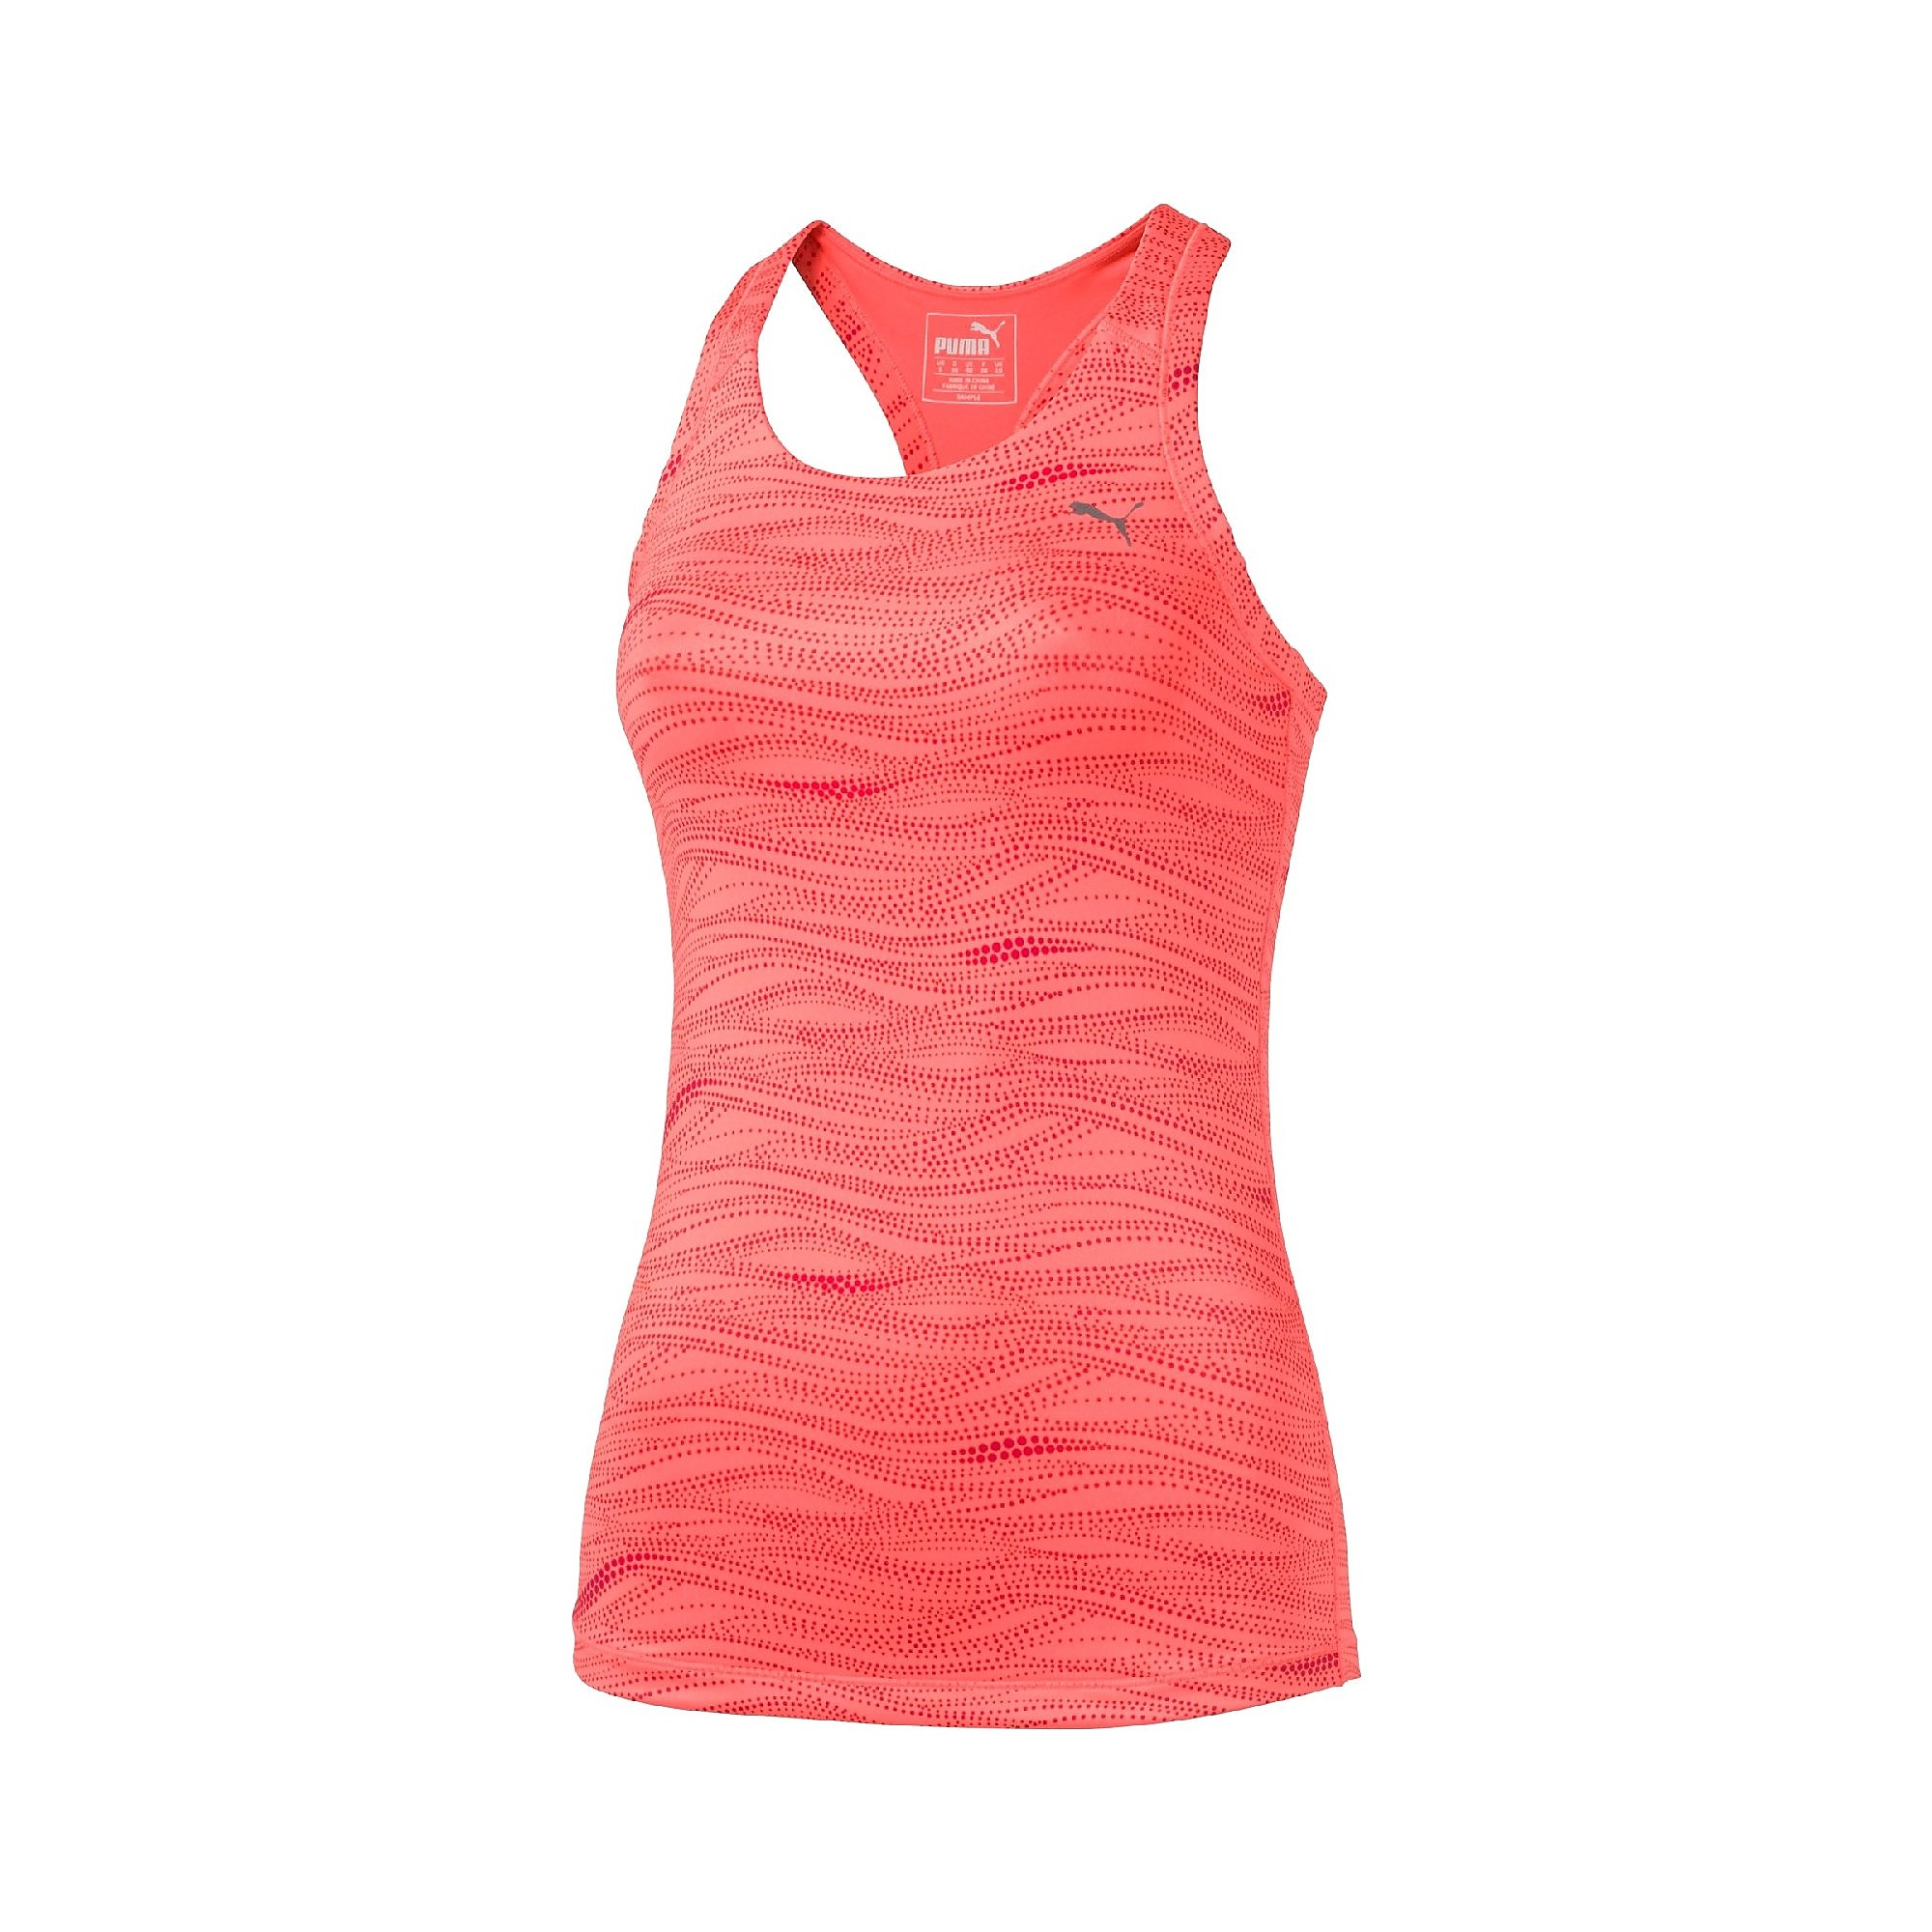 PUMA ESS GRAPHIC TANK